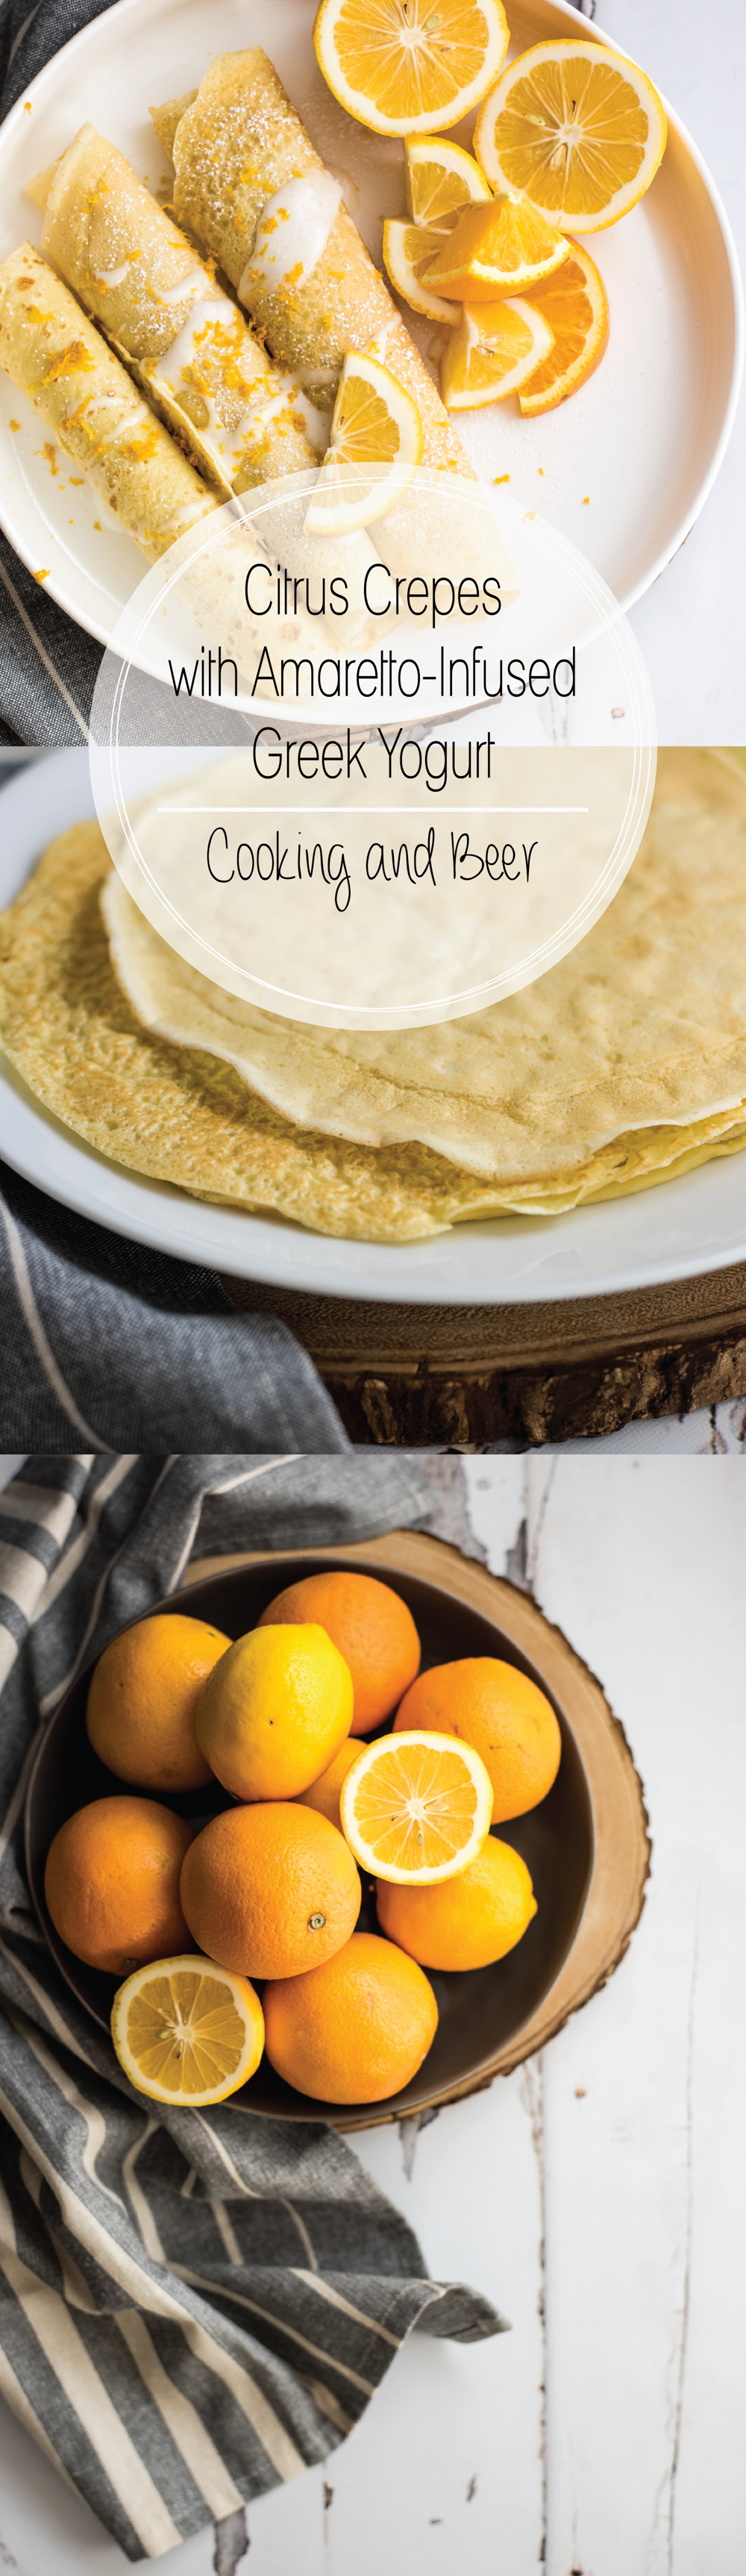 Citrus Lavender Crepes with Amaretto-Infused Greek Yogurt are the perfect addition to your weekend brunch menus! They are bright and super simple to make!